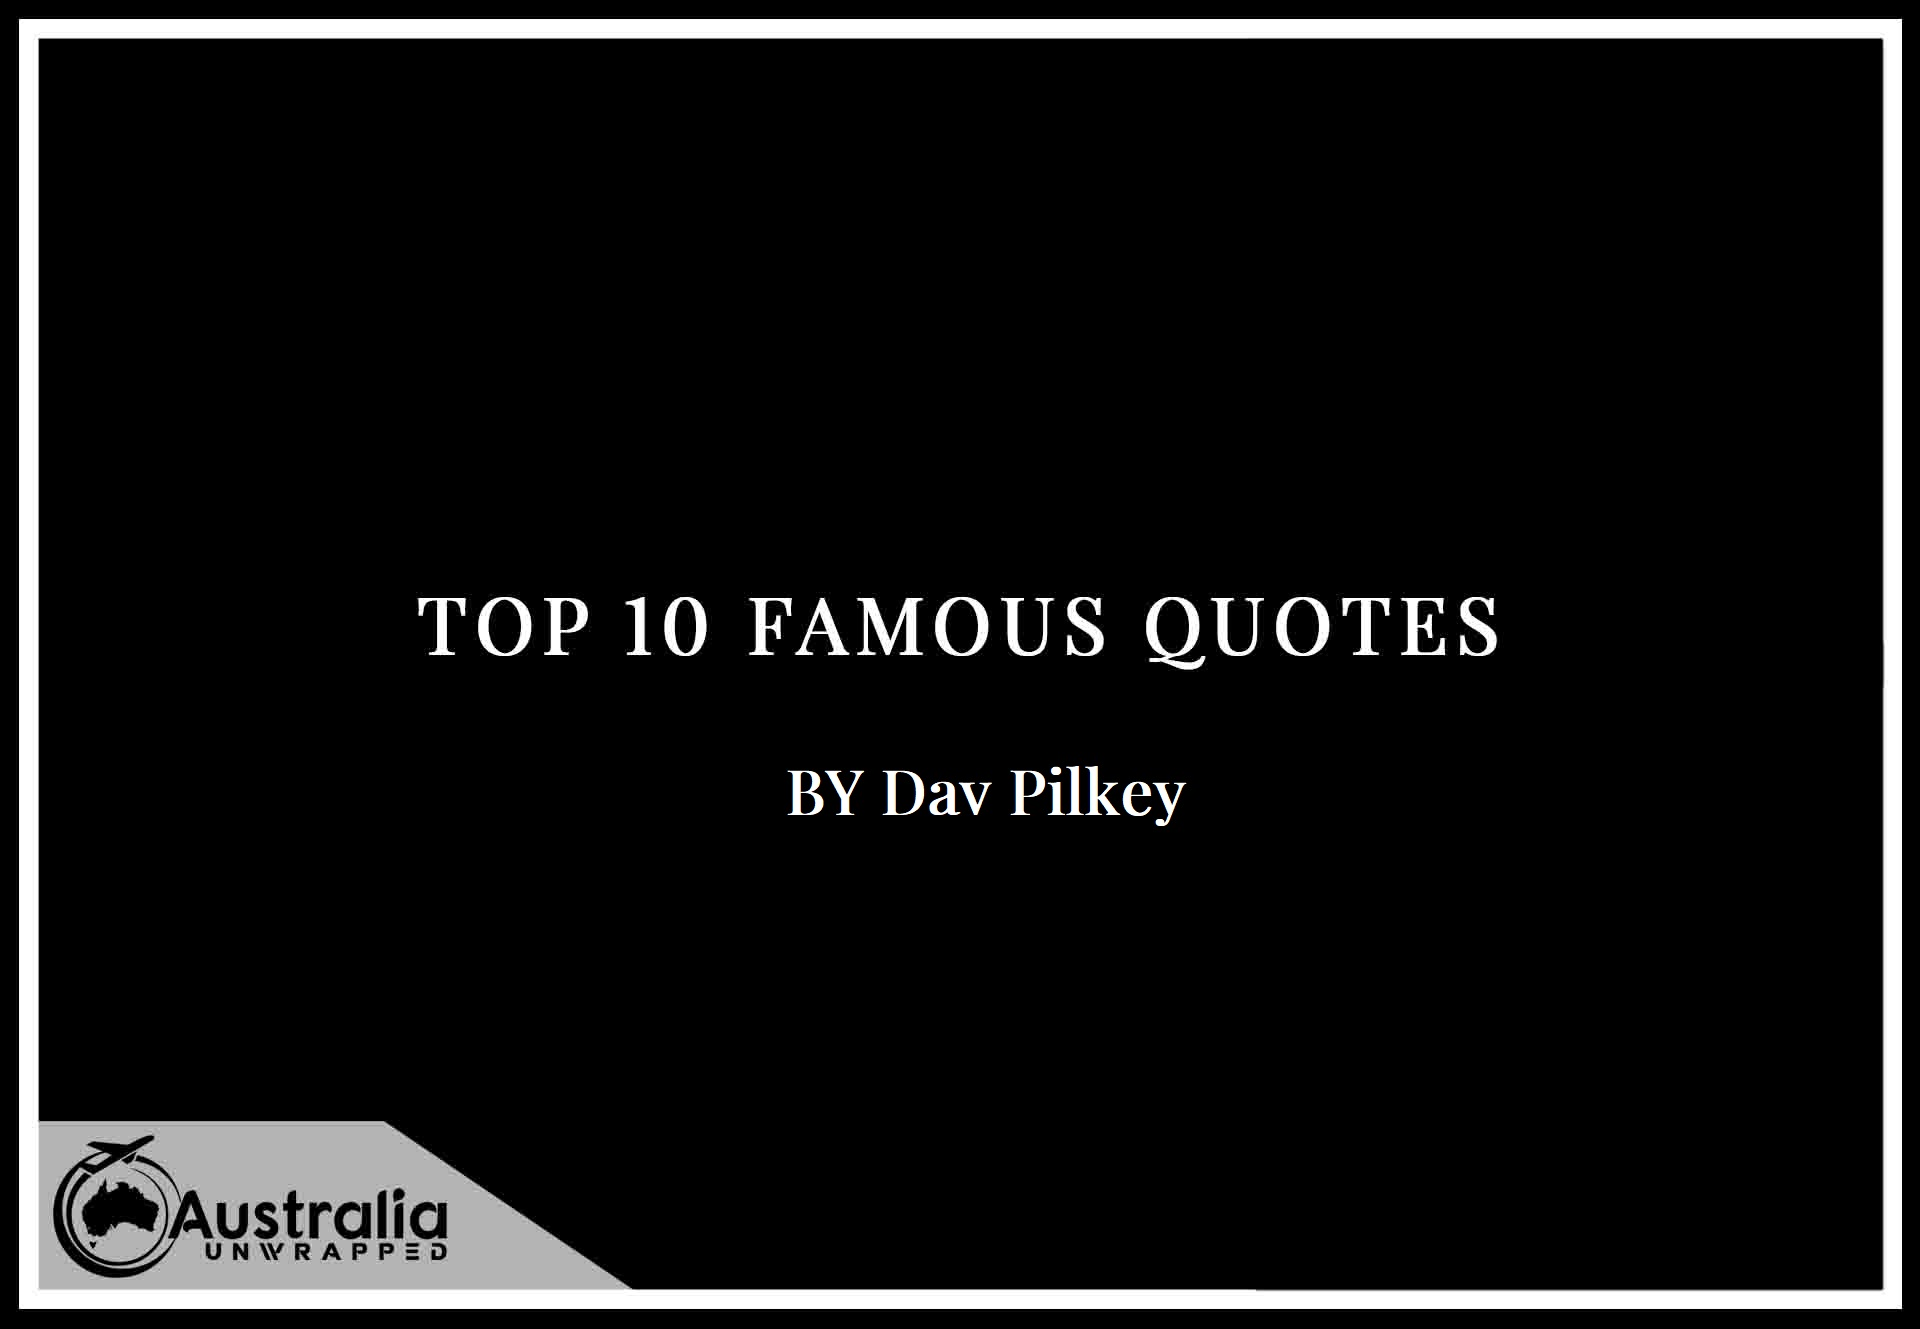 Top 10 Famous Quotes by Author Dav Pilkey